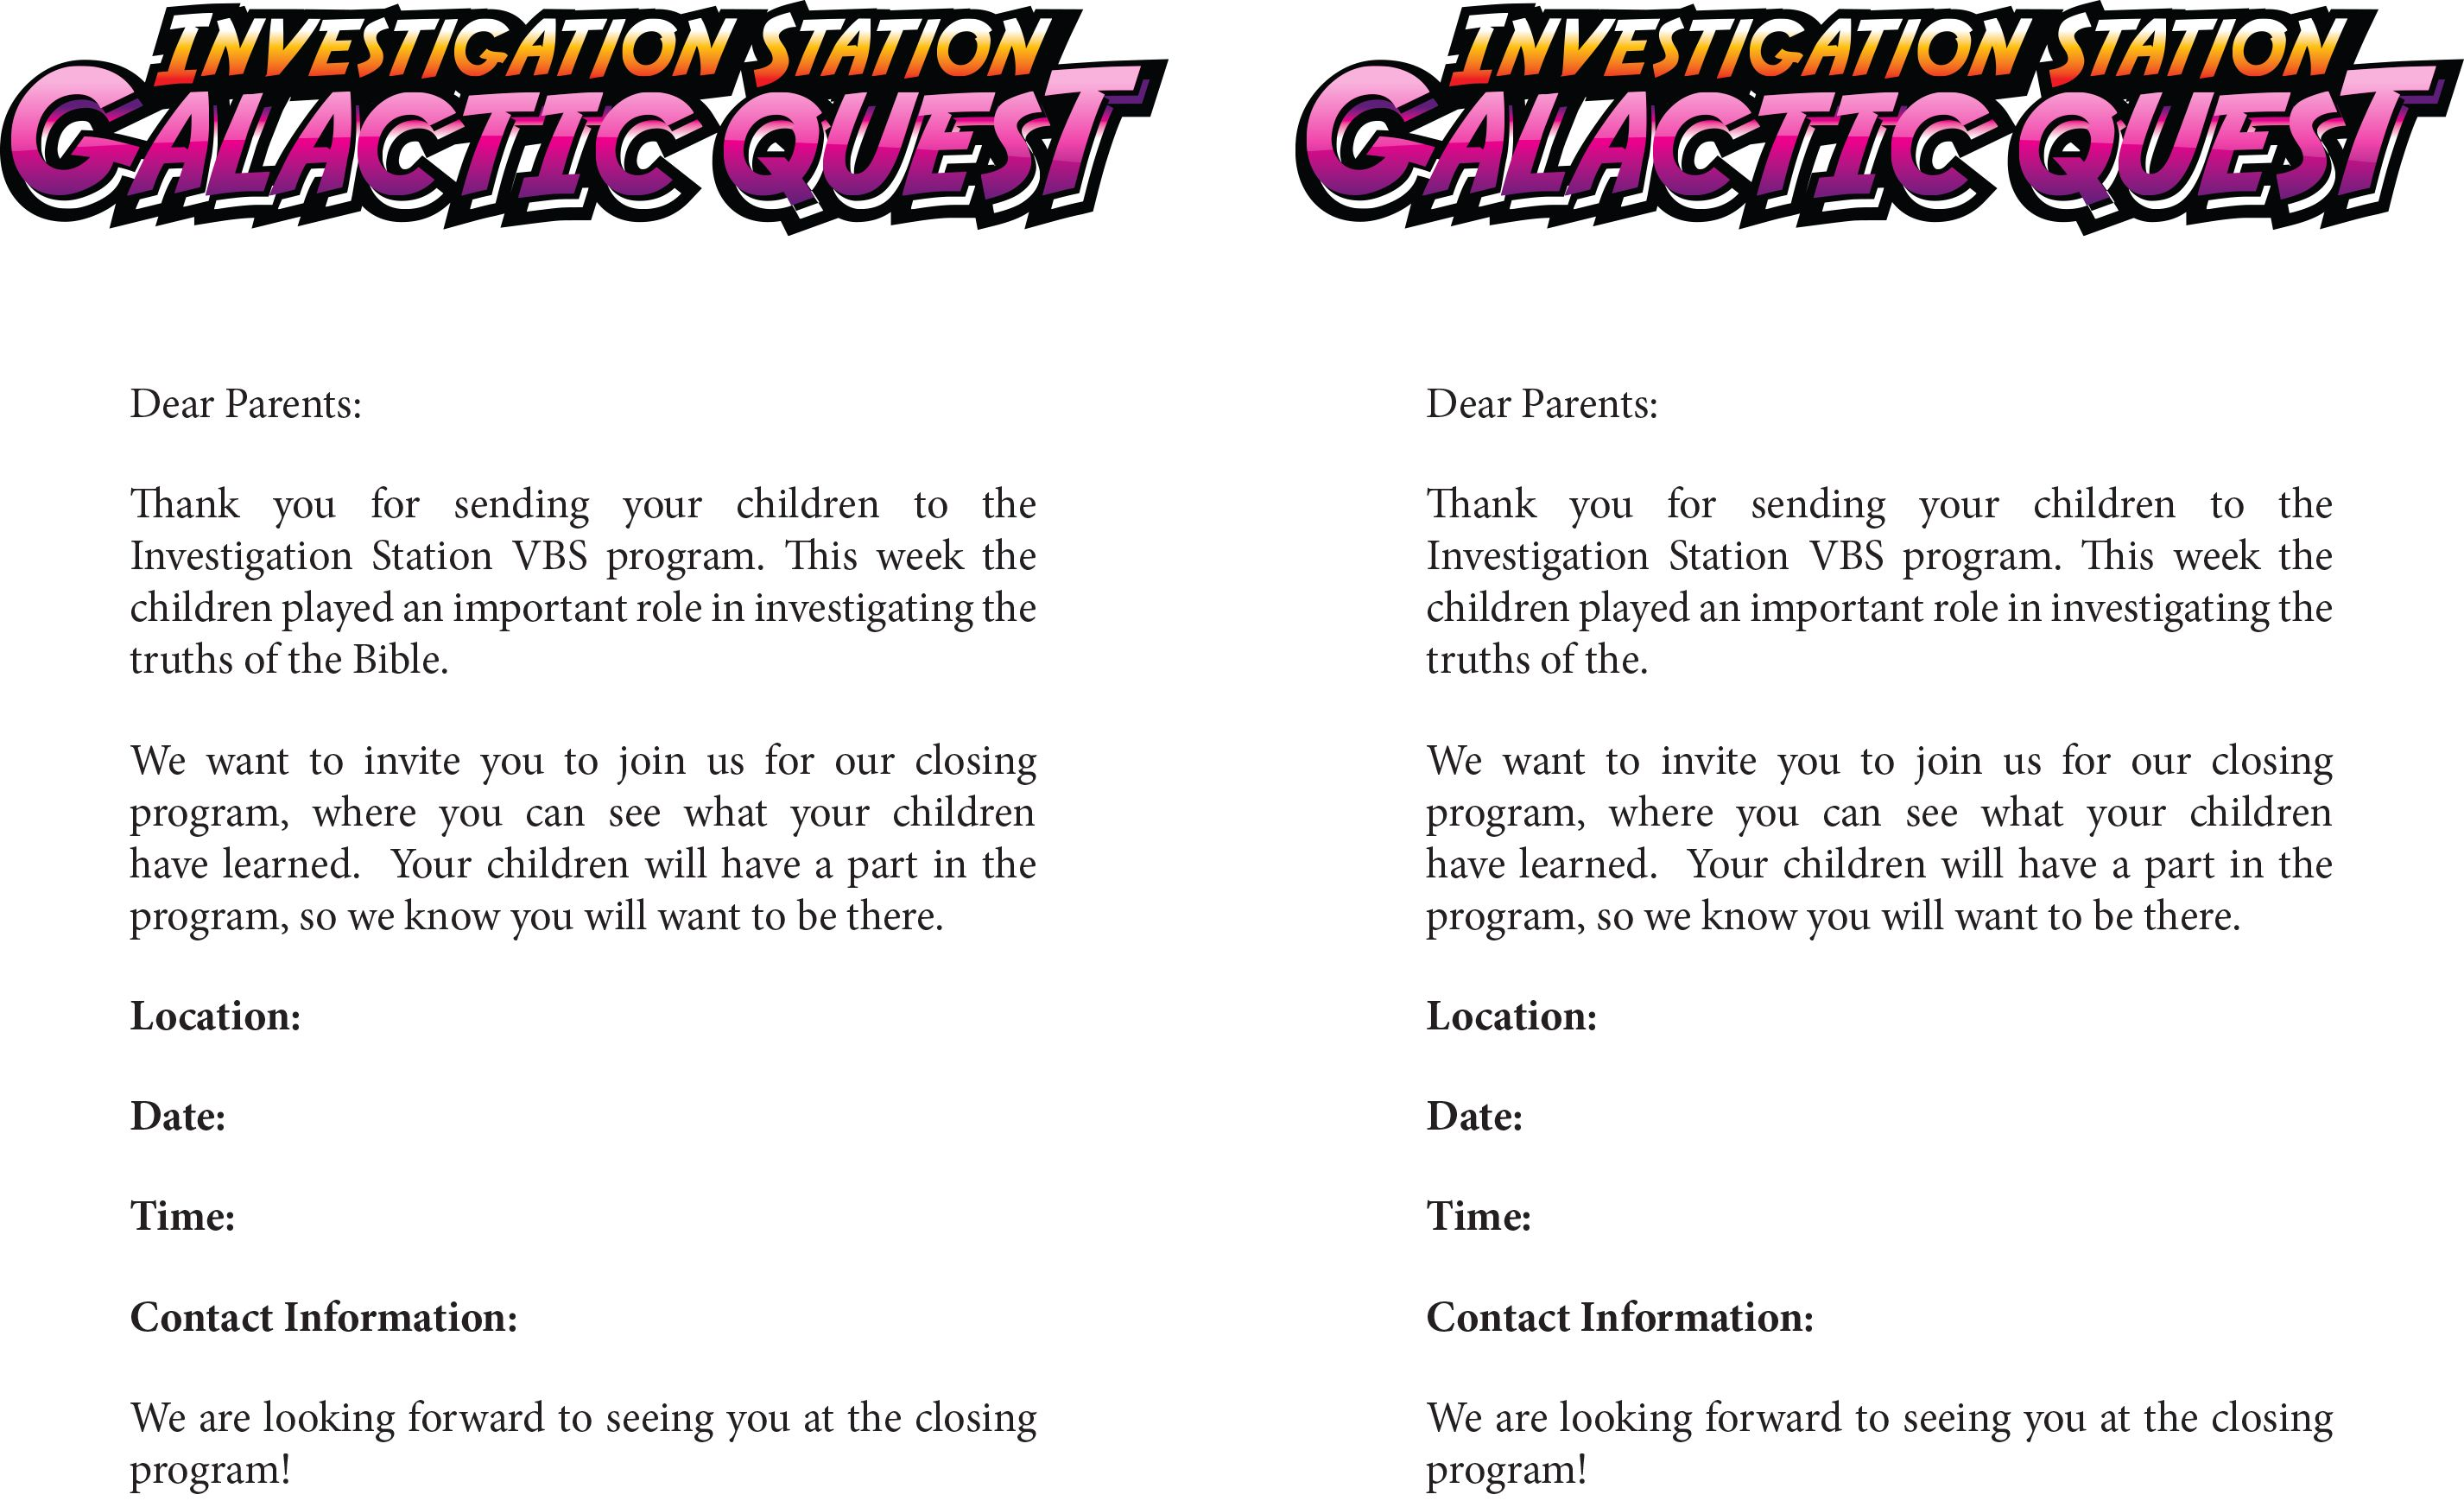 Share This Letter To Invite Parents To The Closing Program For